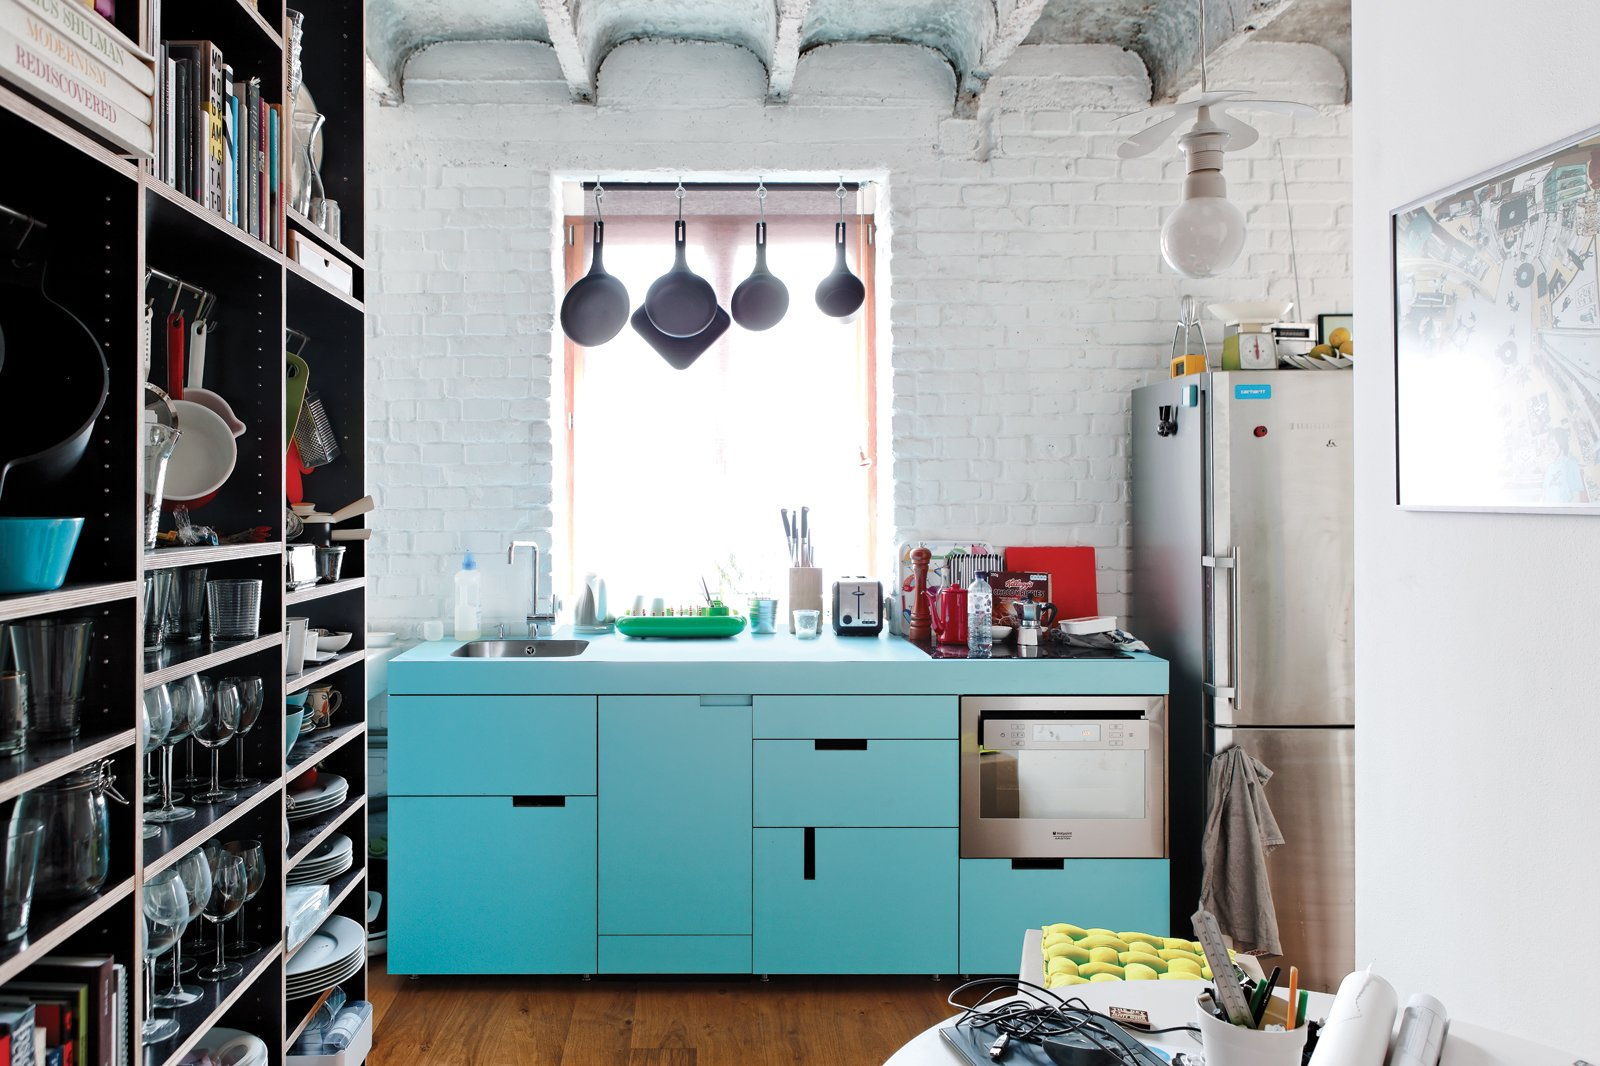 "The budget was nearly as tight as the space in this cheerful renovation of a 516-square-foot flat in Bratislava. The centerpiece of Lukáš Kordík's new kitchen is the cabinetry surrounding the sink, a feat he managed by altering the facing and pulls of an off-the-rack Ikea system. The laminate offers a good punch of blue, and in modernist fashion, Kordík forwent door handles in favor of cutouts. ""I wanted the kitchen to be one simple block of color without any additional design,"" he says."